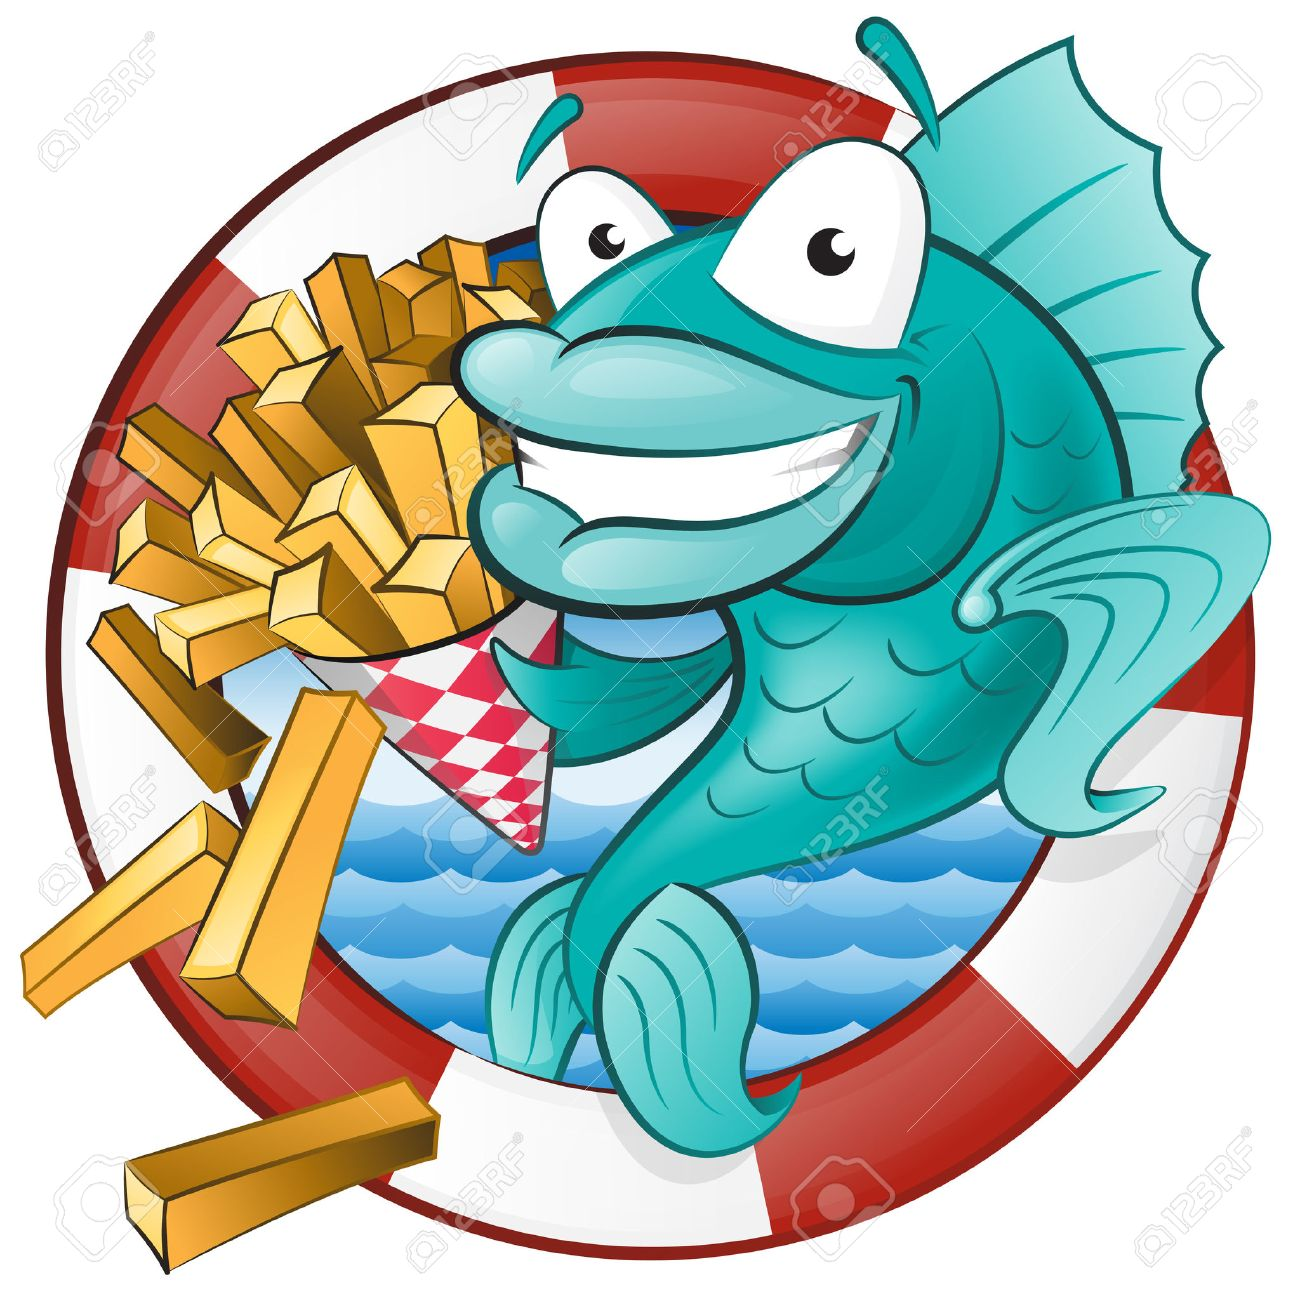 Great illustration of a Cute Cartoon Cod Fish eating a tasty Traditional British portion of chips - 24589567